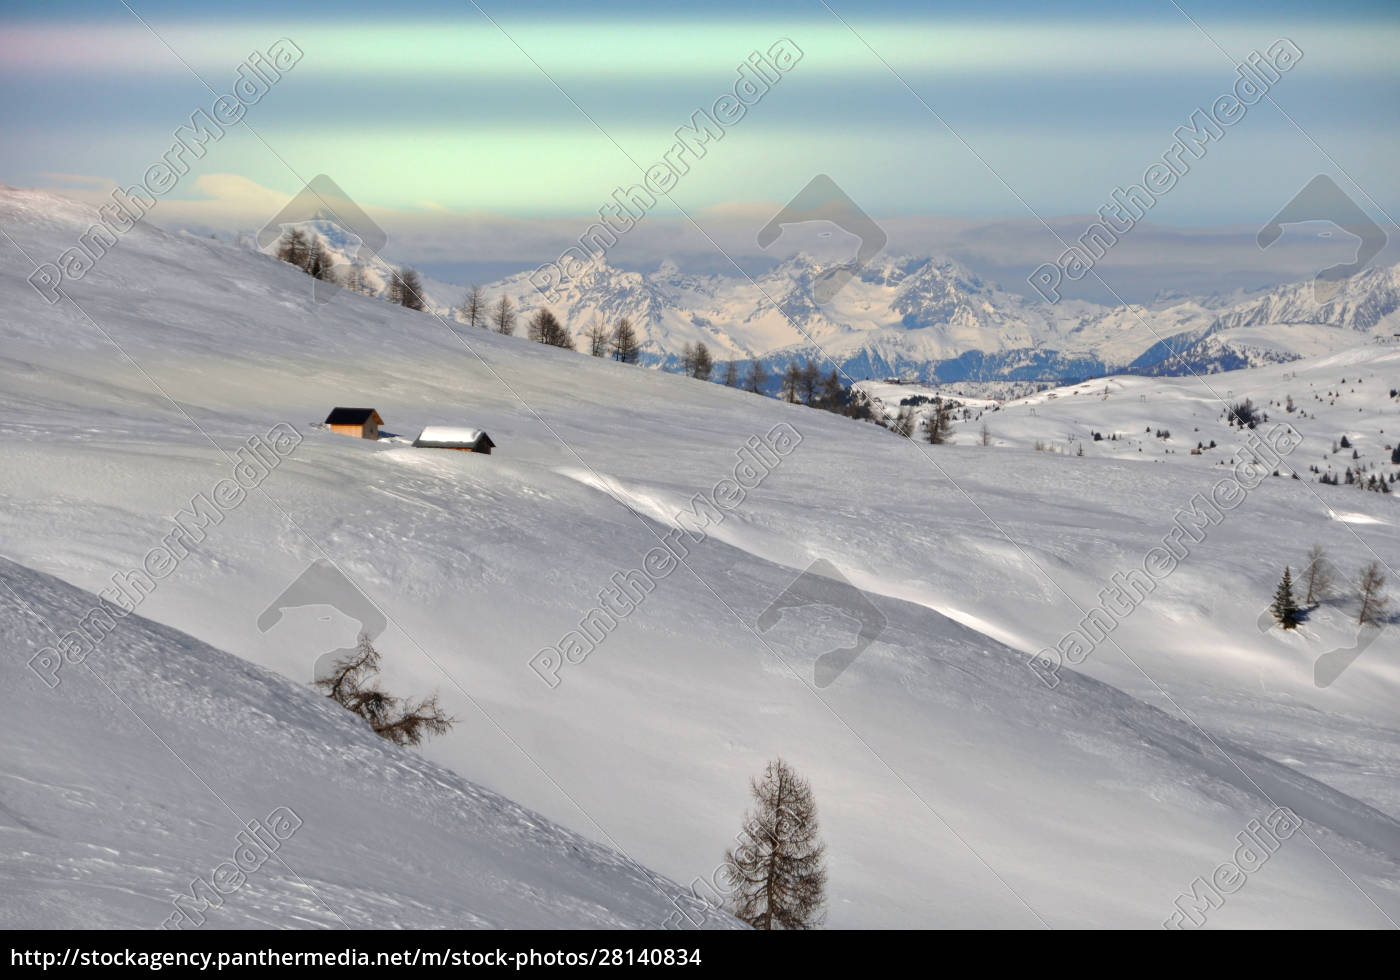 skiing, insouthern, tyrol - 28140834